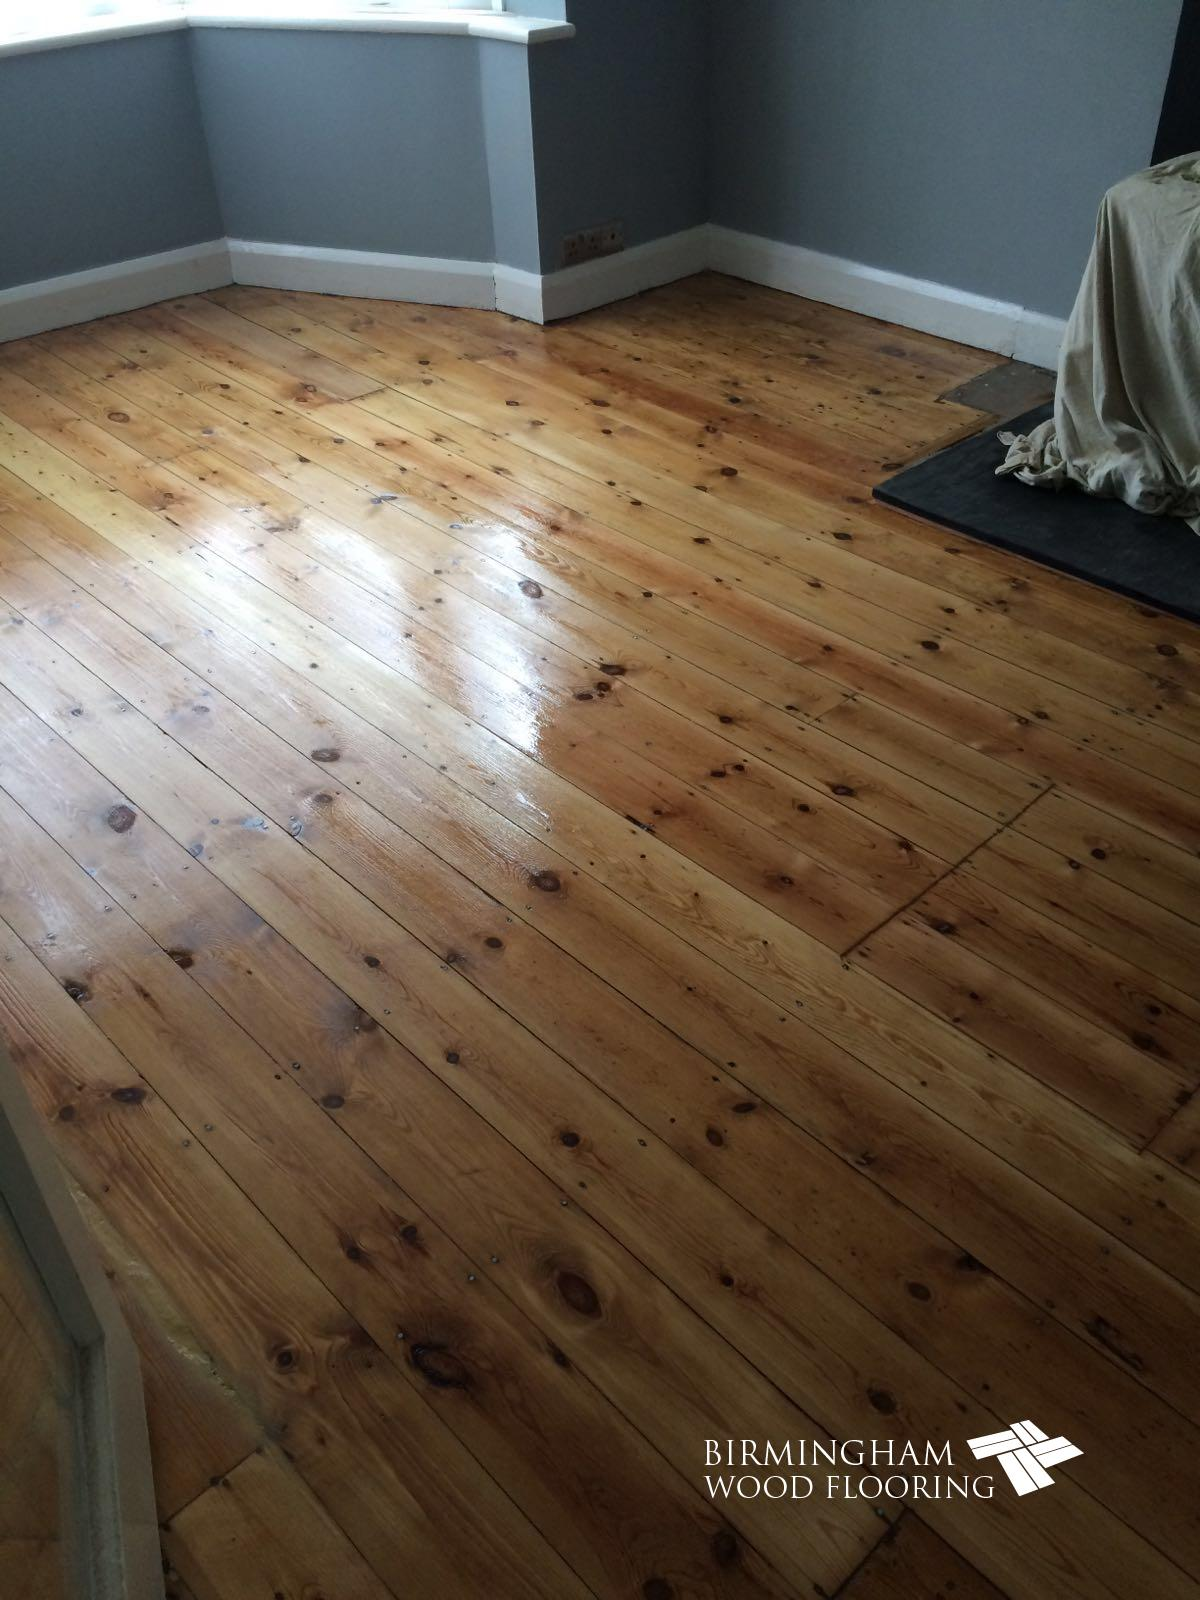 Wood-floor-sanded-and-lacquereed-2